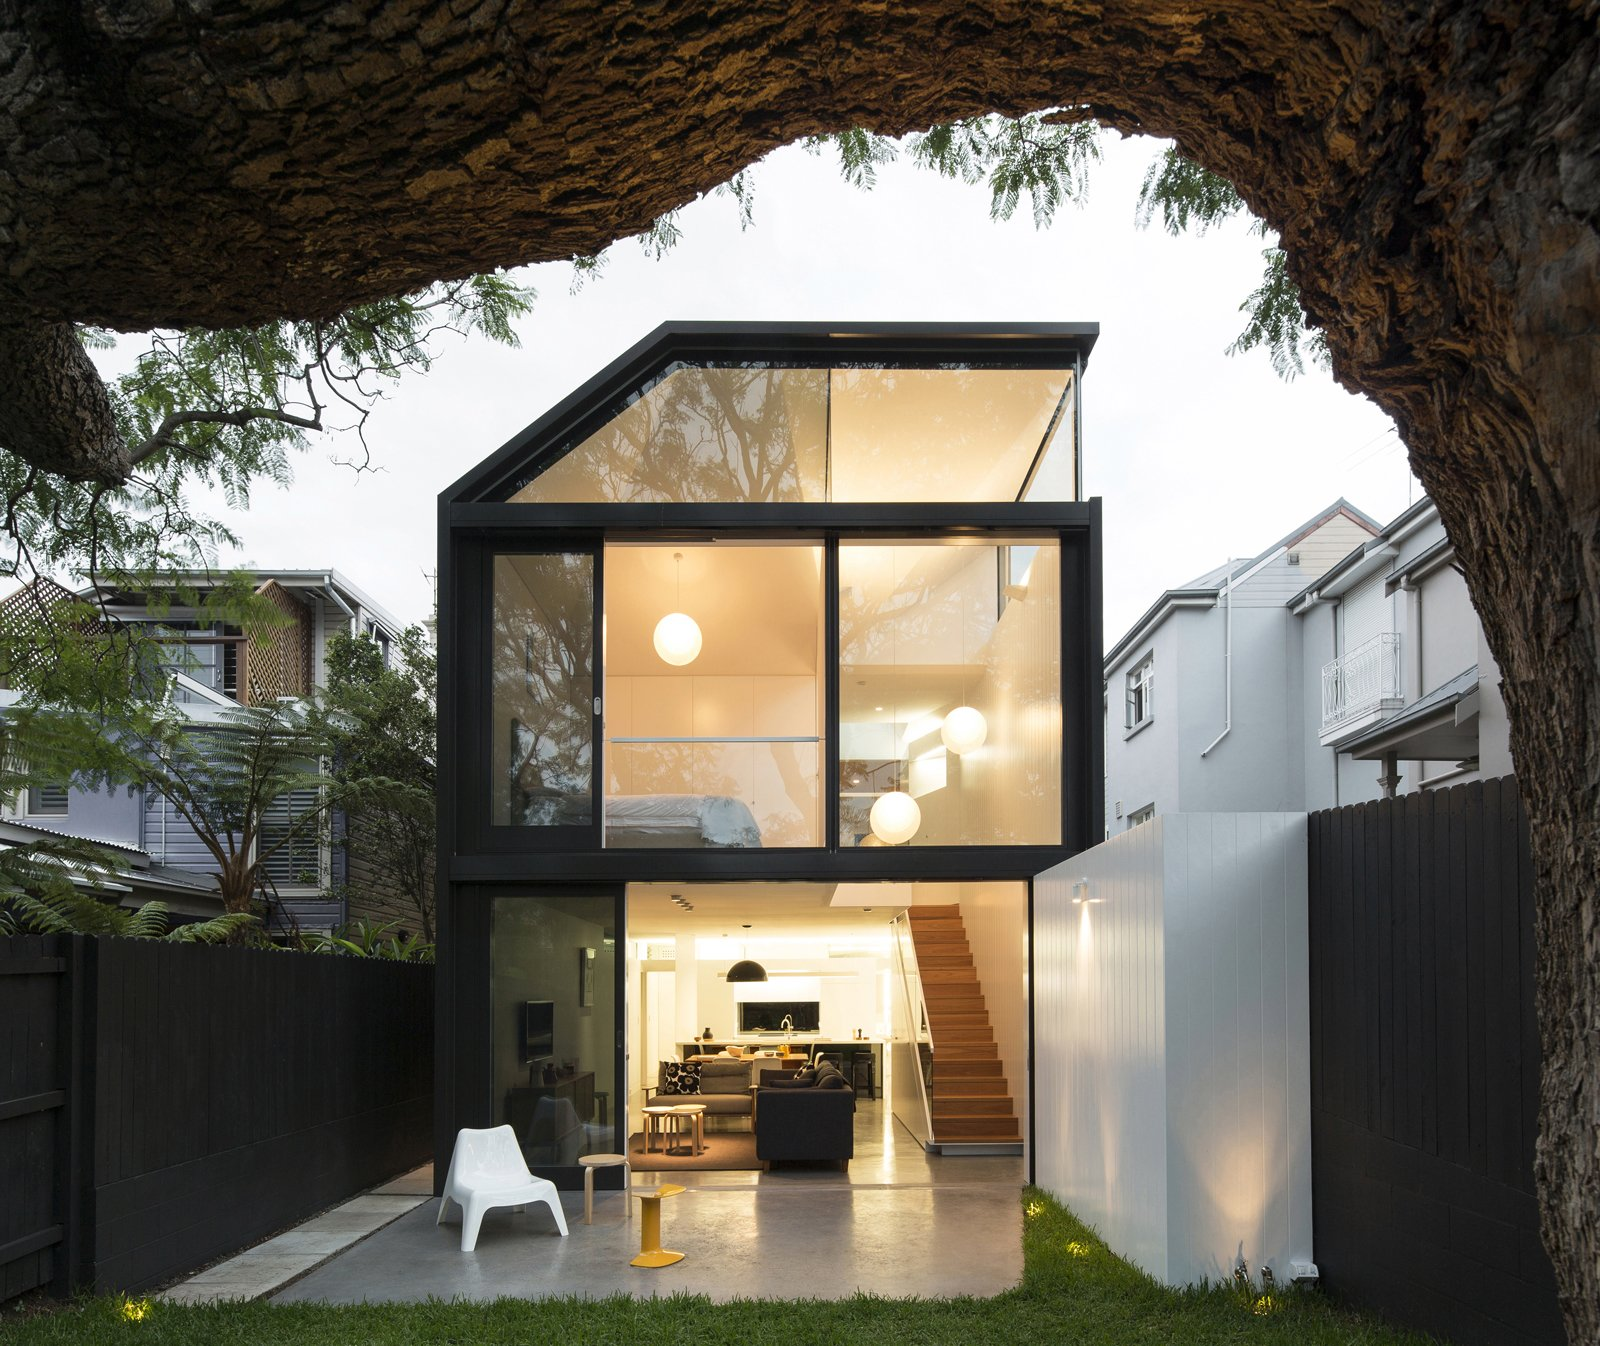 Photo 1 of 9 in Renovation Near Sydney Opens Home Onto a Lush Garden